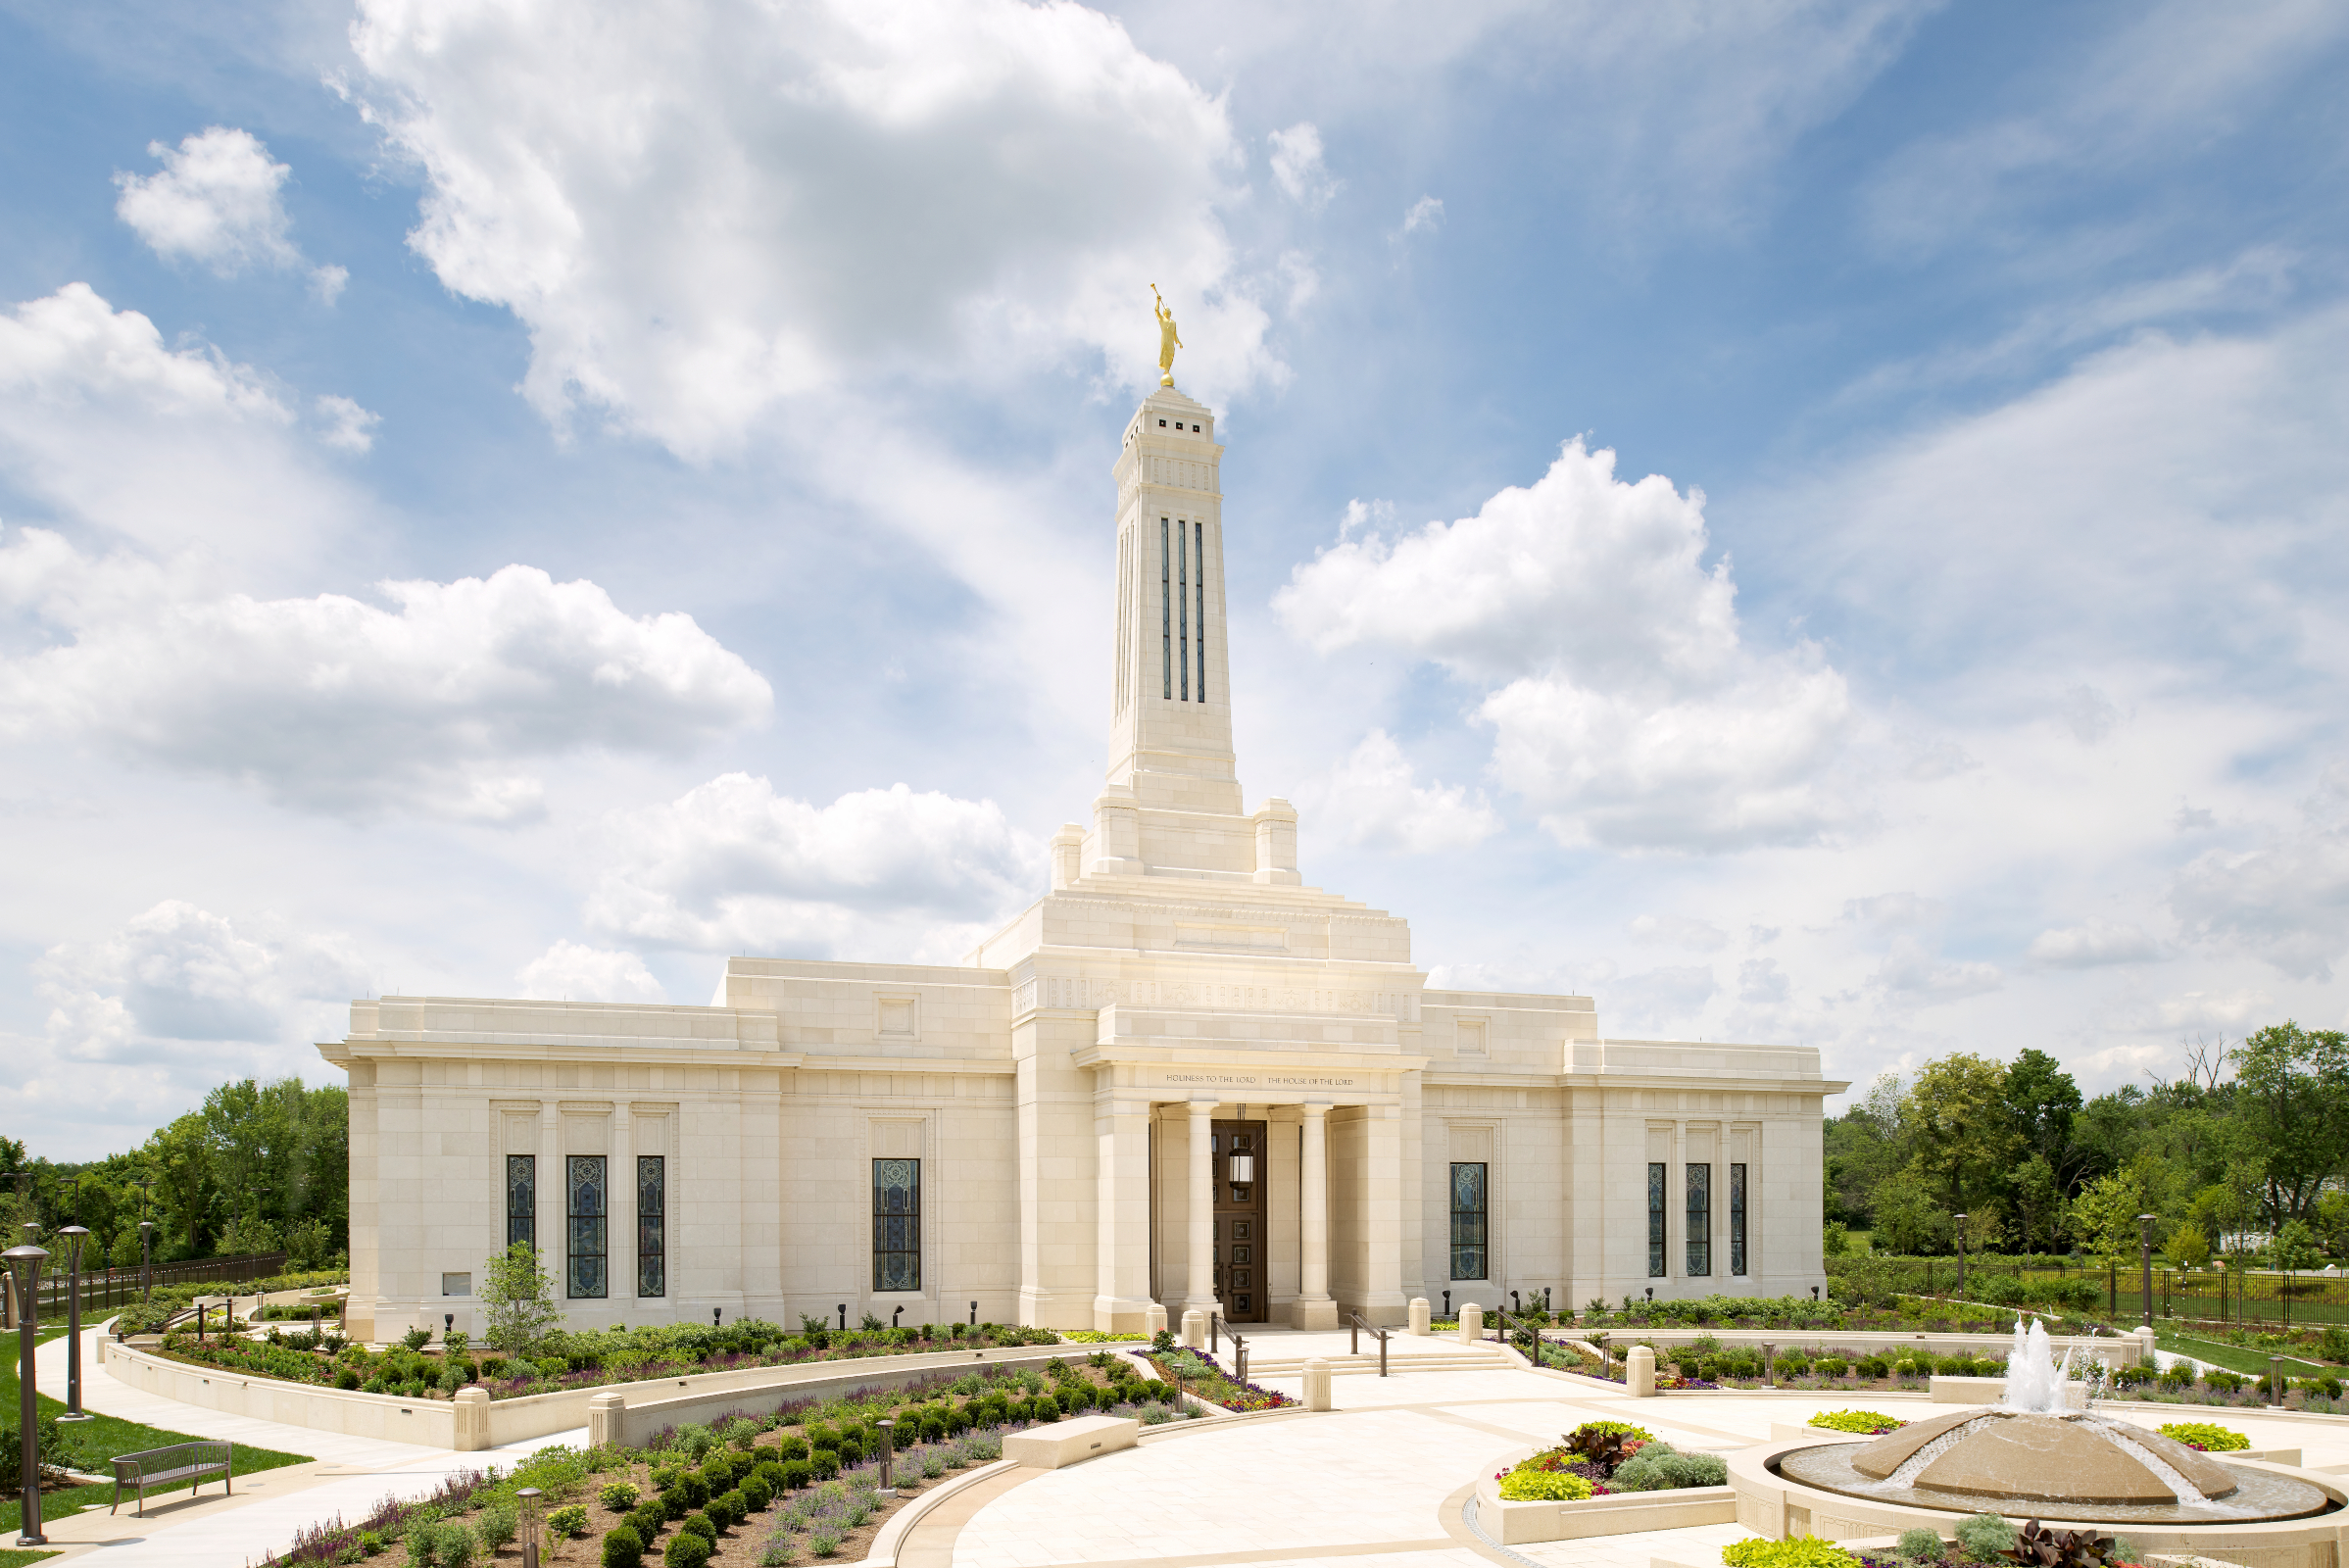 Jesus Inspirational Quotes Wallpaper Indianapolis Indiana Temple